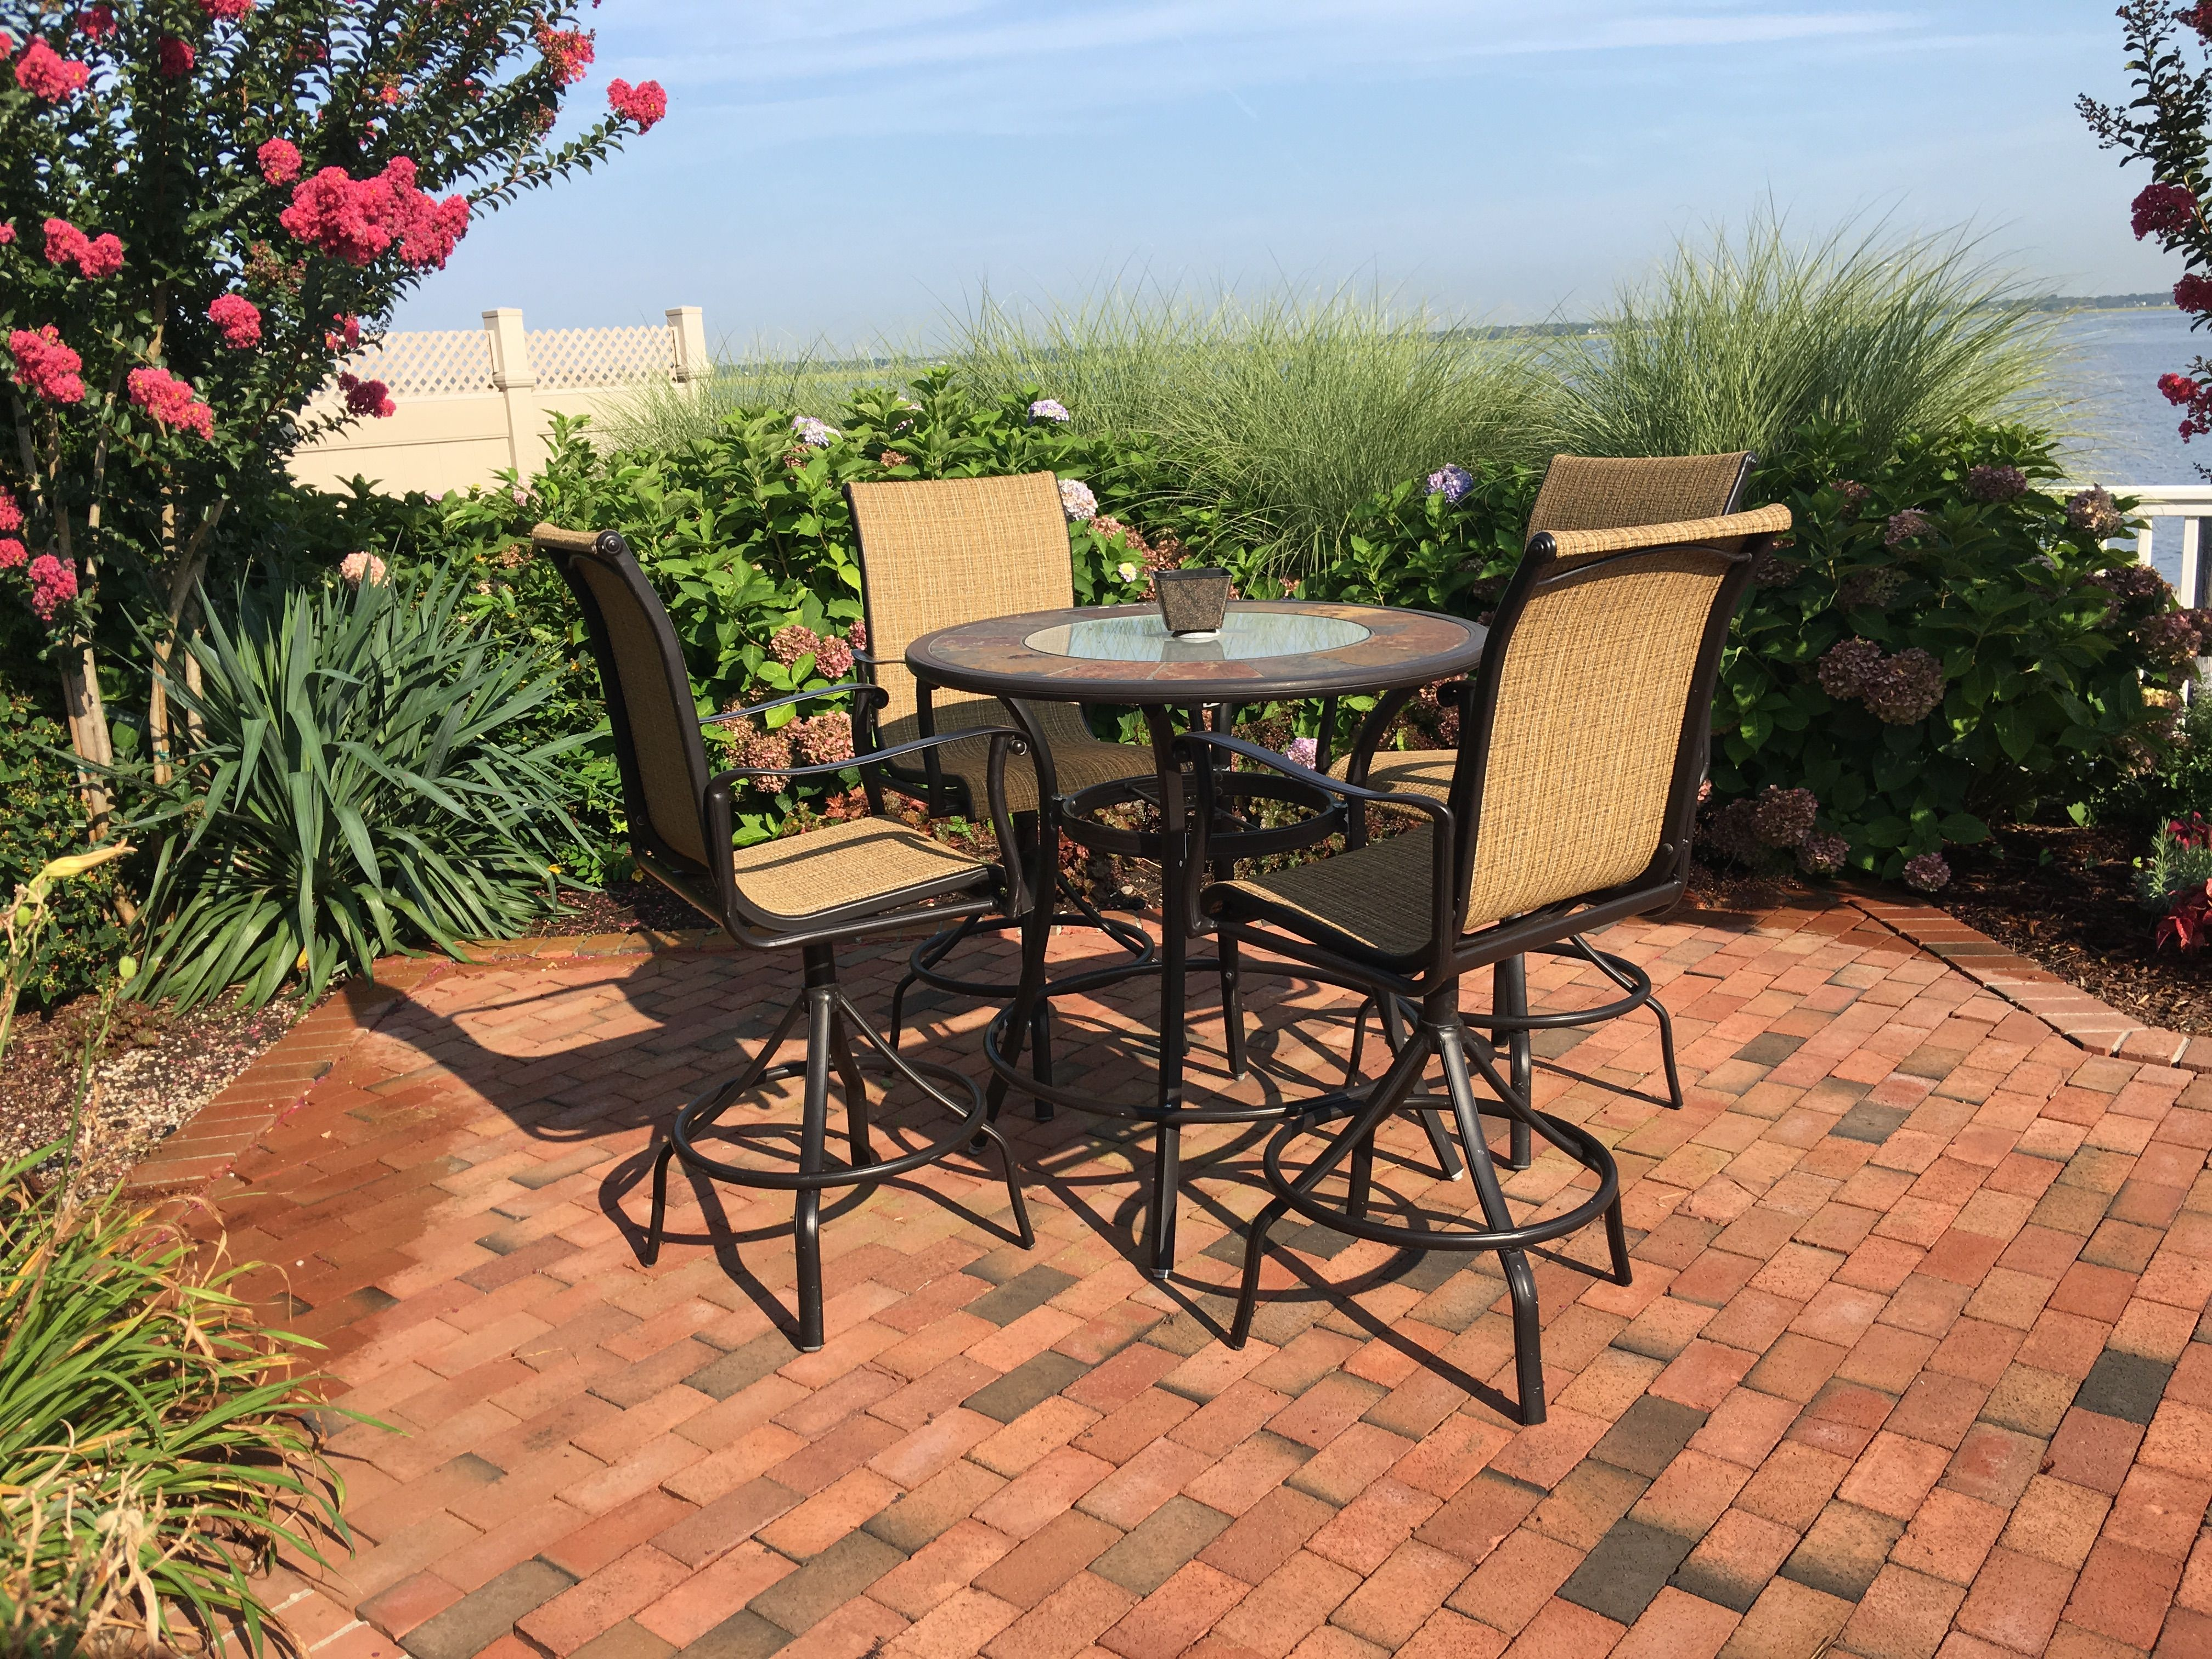 0231ac432a96be86e023775e1b428663 Top Result 50 New Patio Furniture Plus Picture 2017 Hyt4